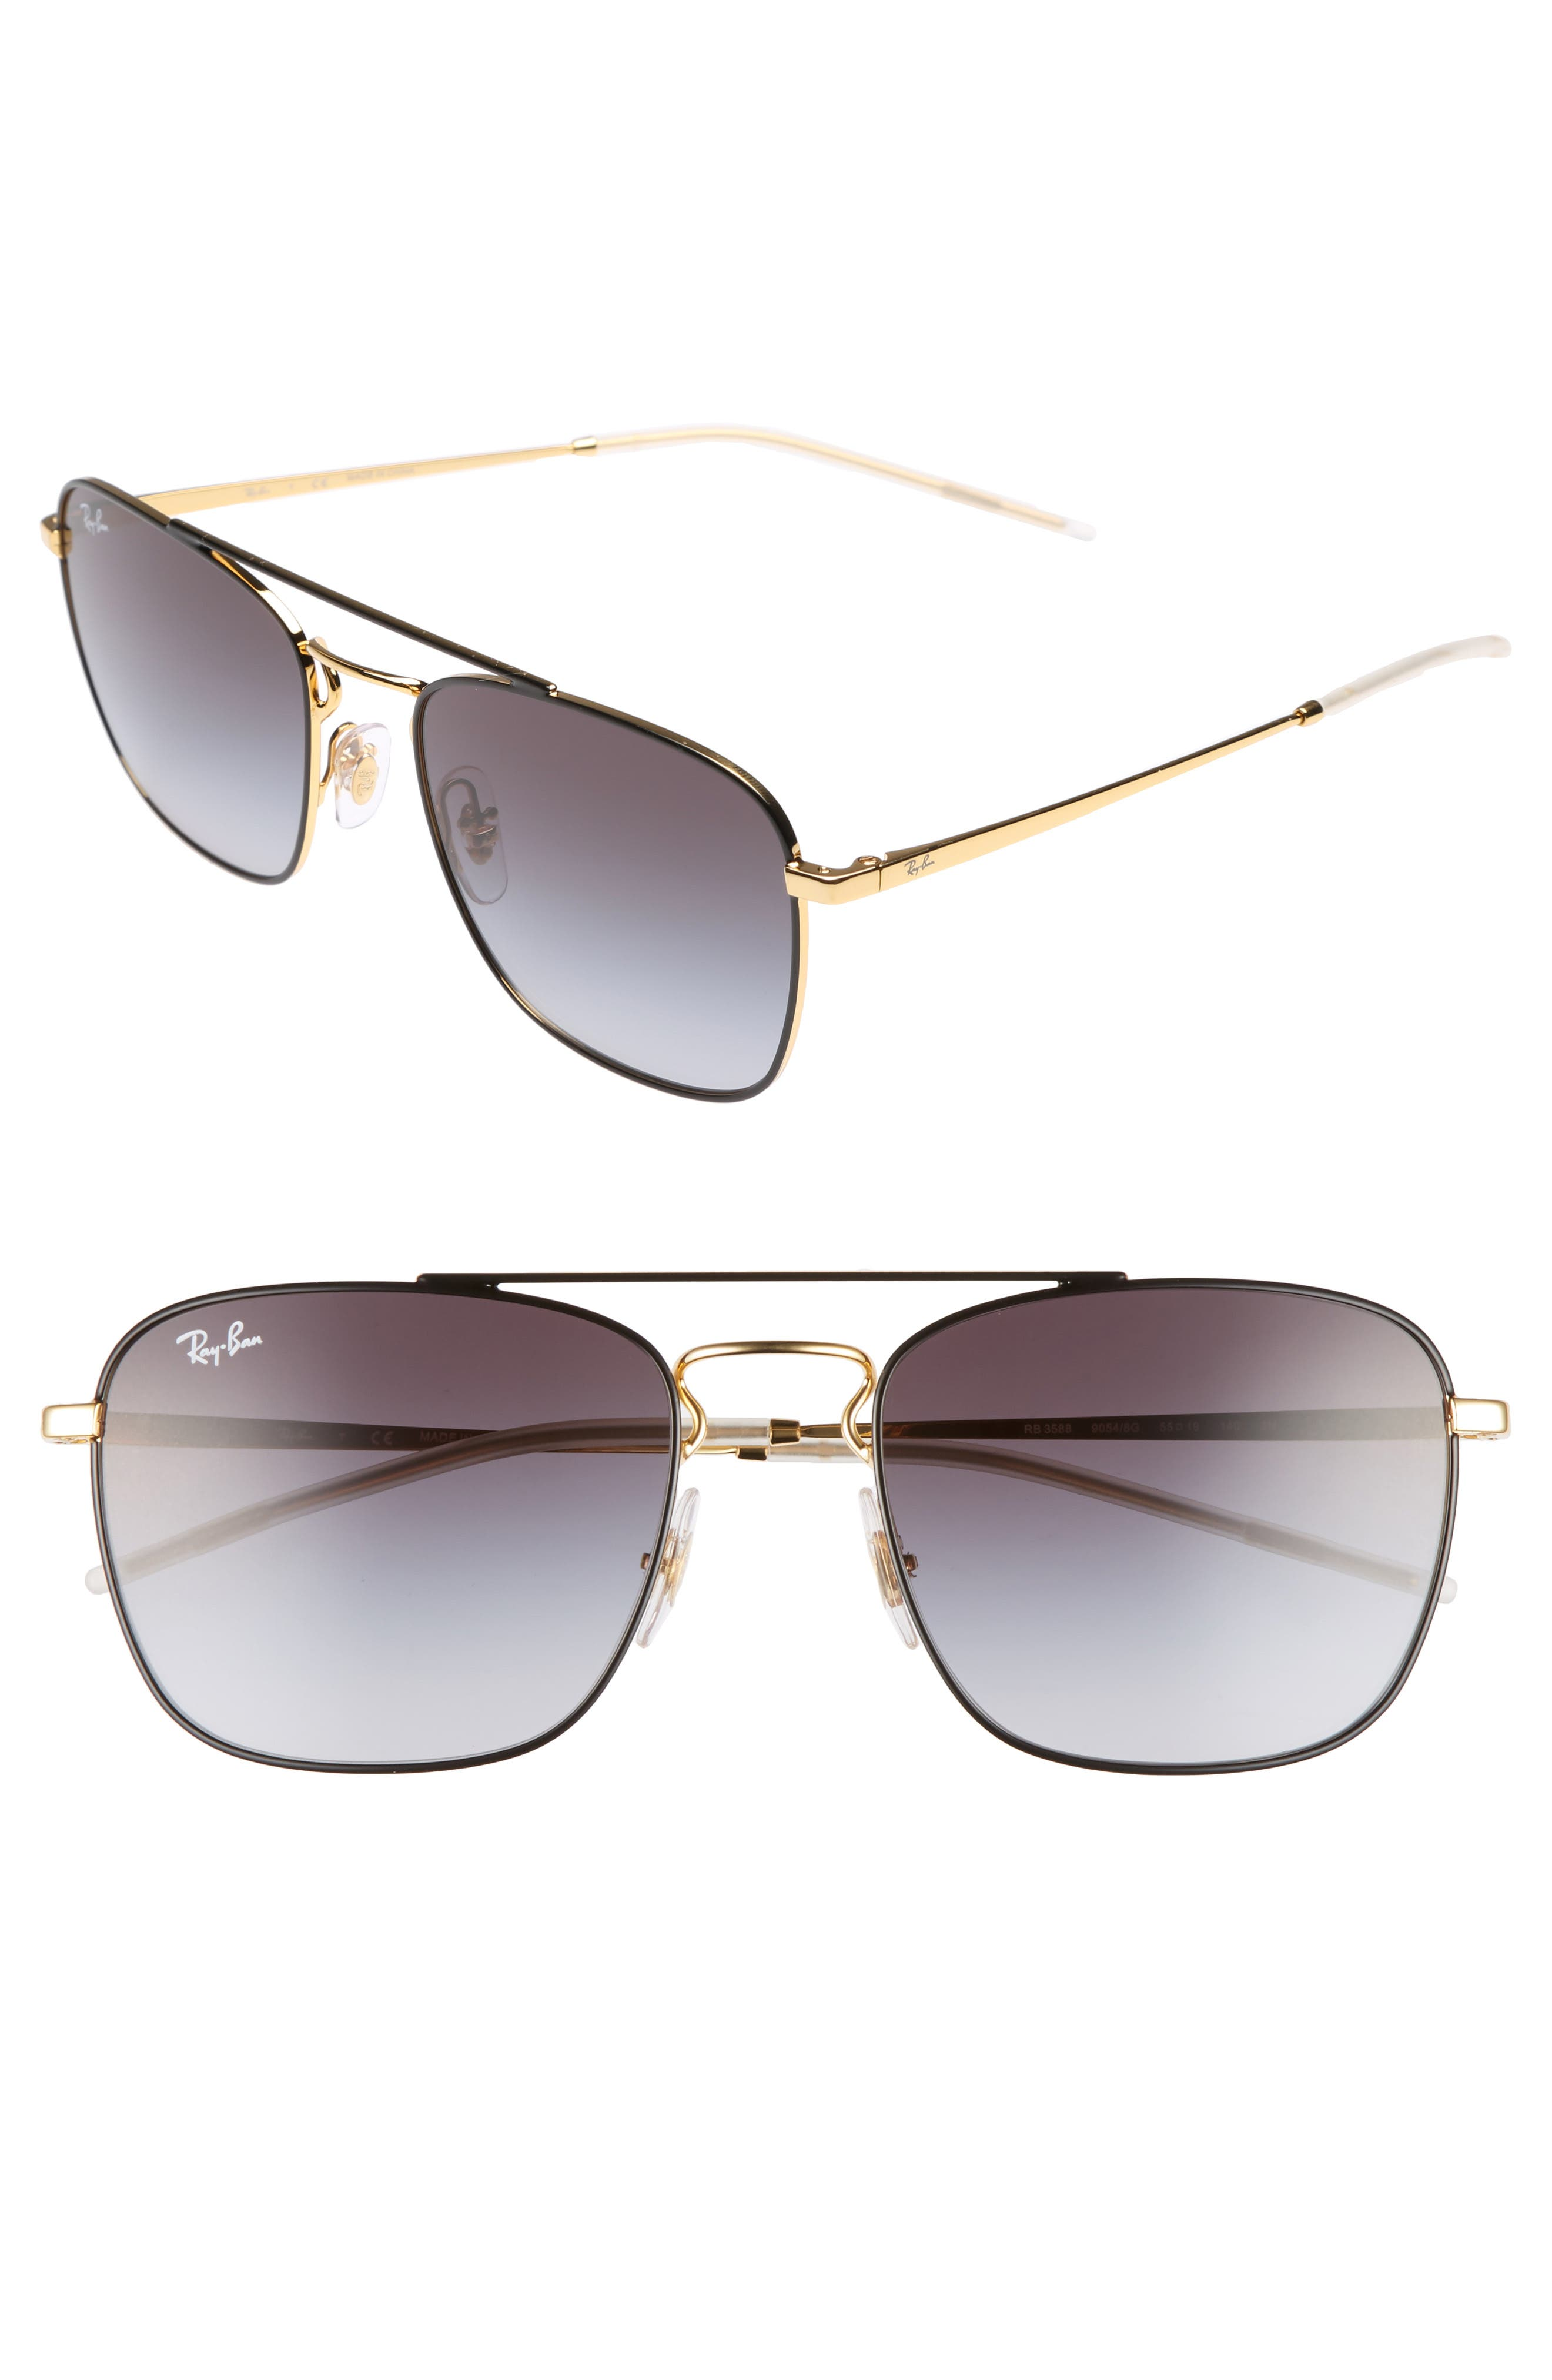 Ray-Ban Youngster Double Bridge 55Mm Sunglasses -